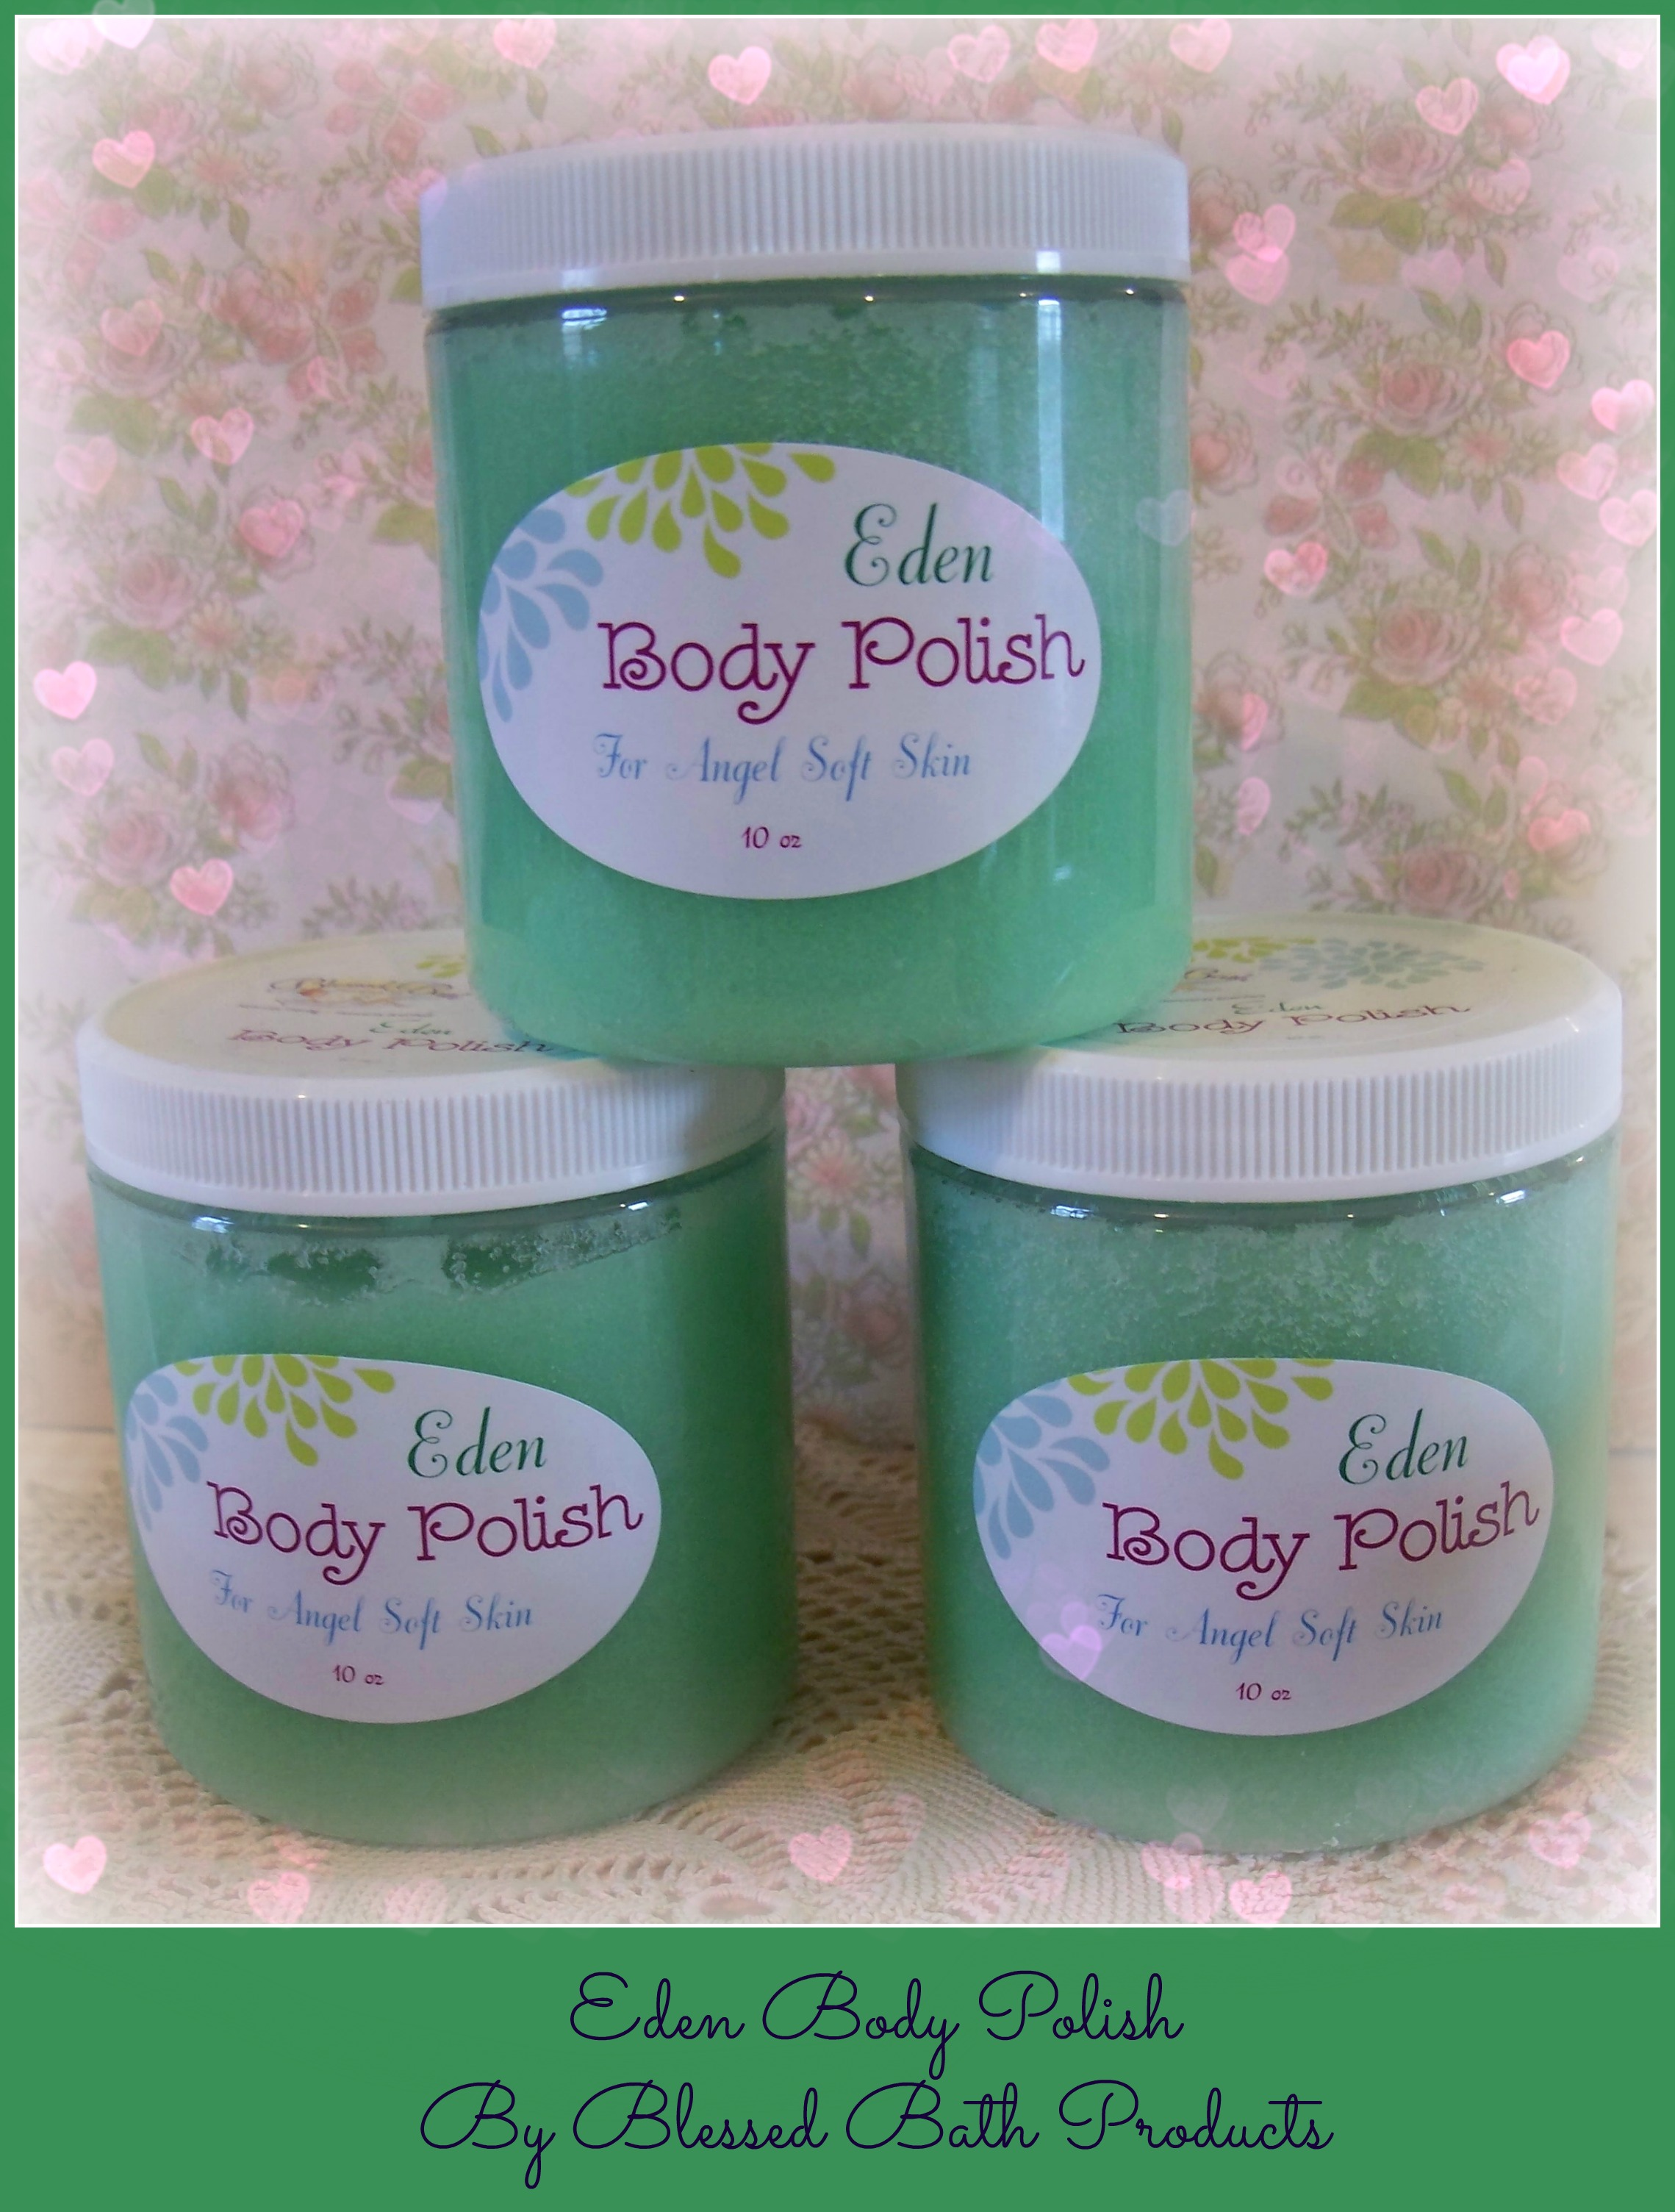 Eden Body Polish